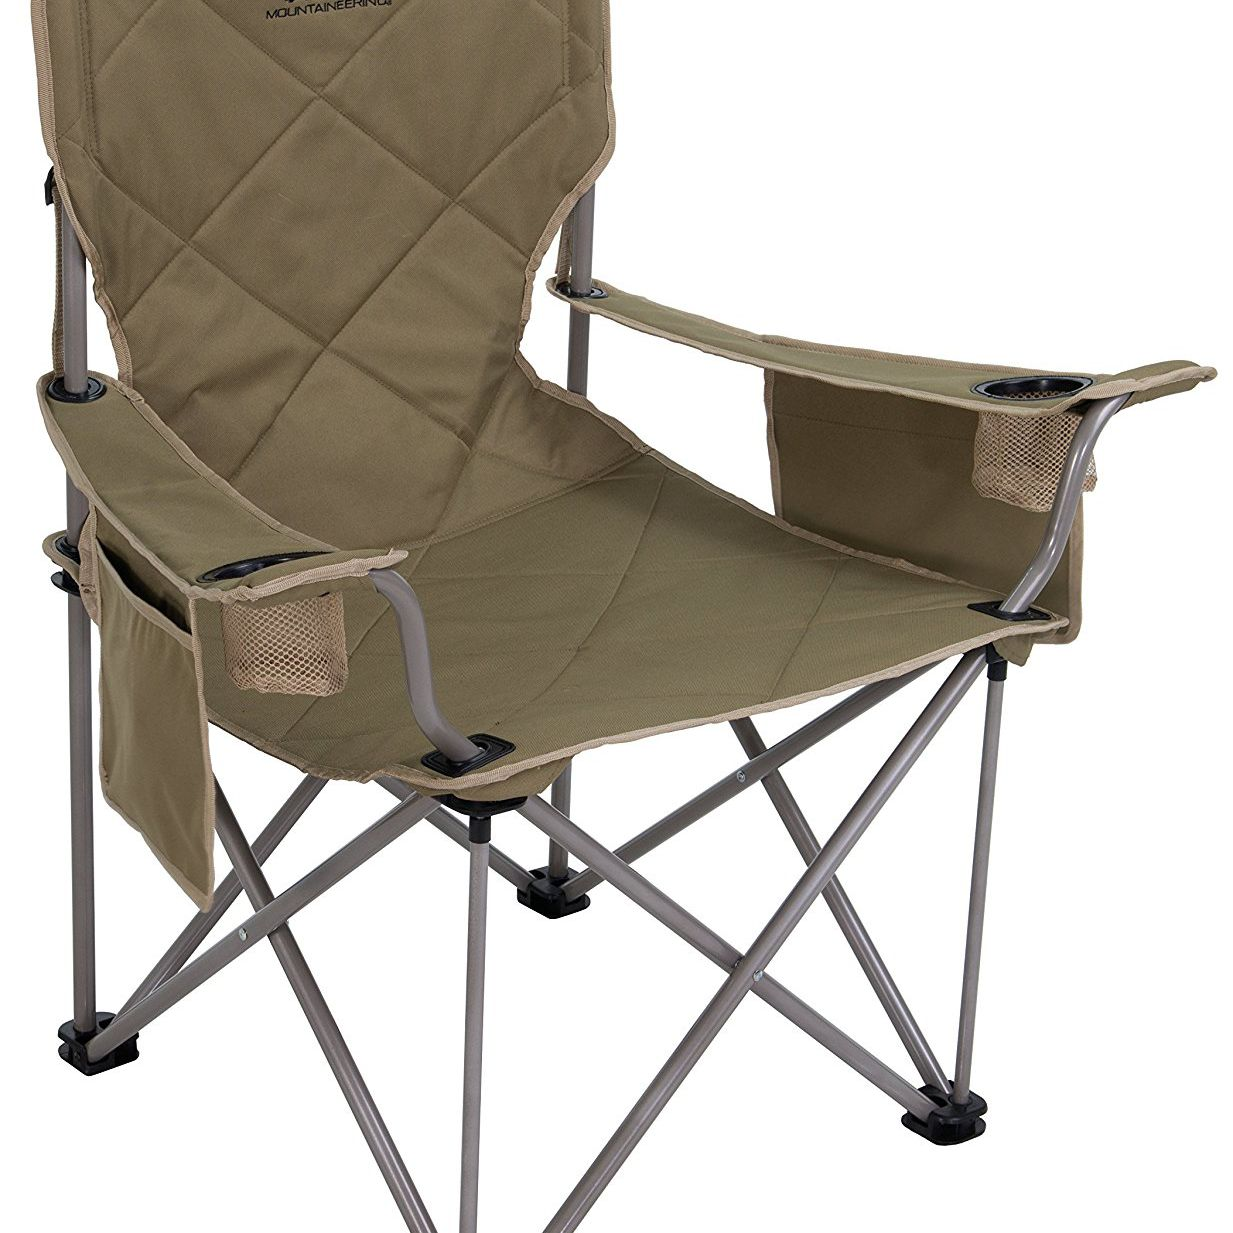 Phenomenal The 8 Best Camping Chairs Of 2019 Cjindustries Chair Design For Home Cjindustriesco